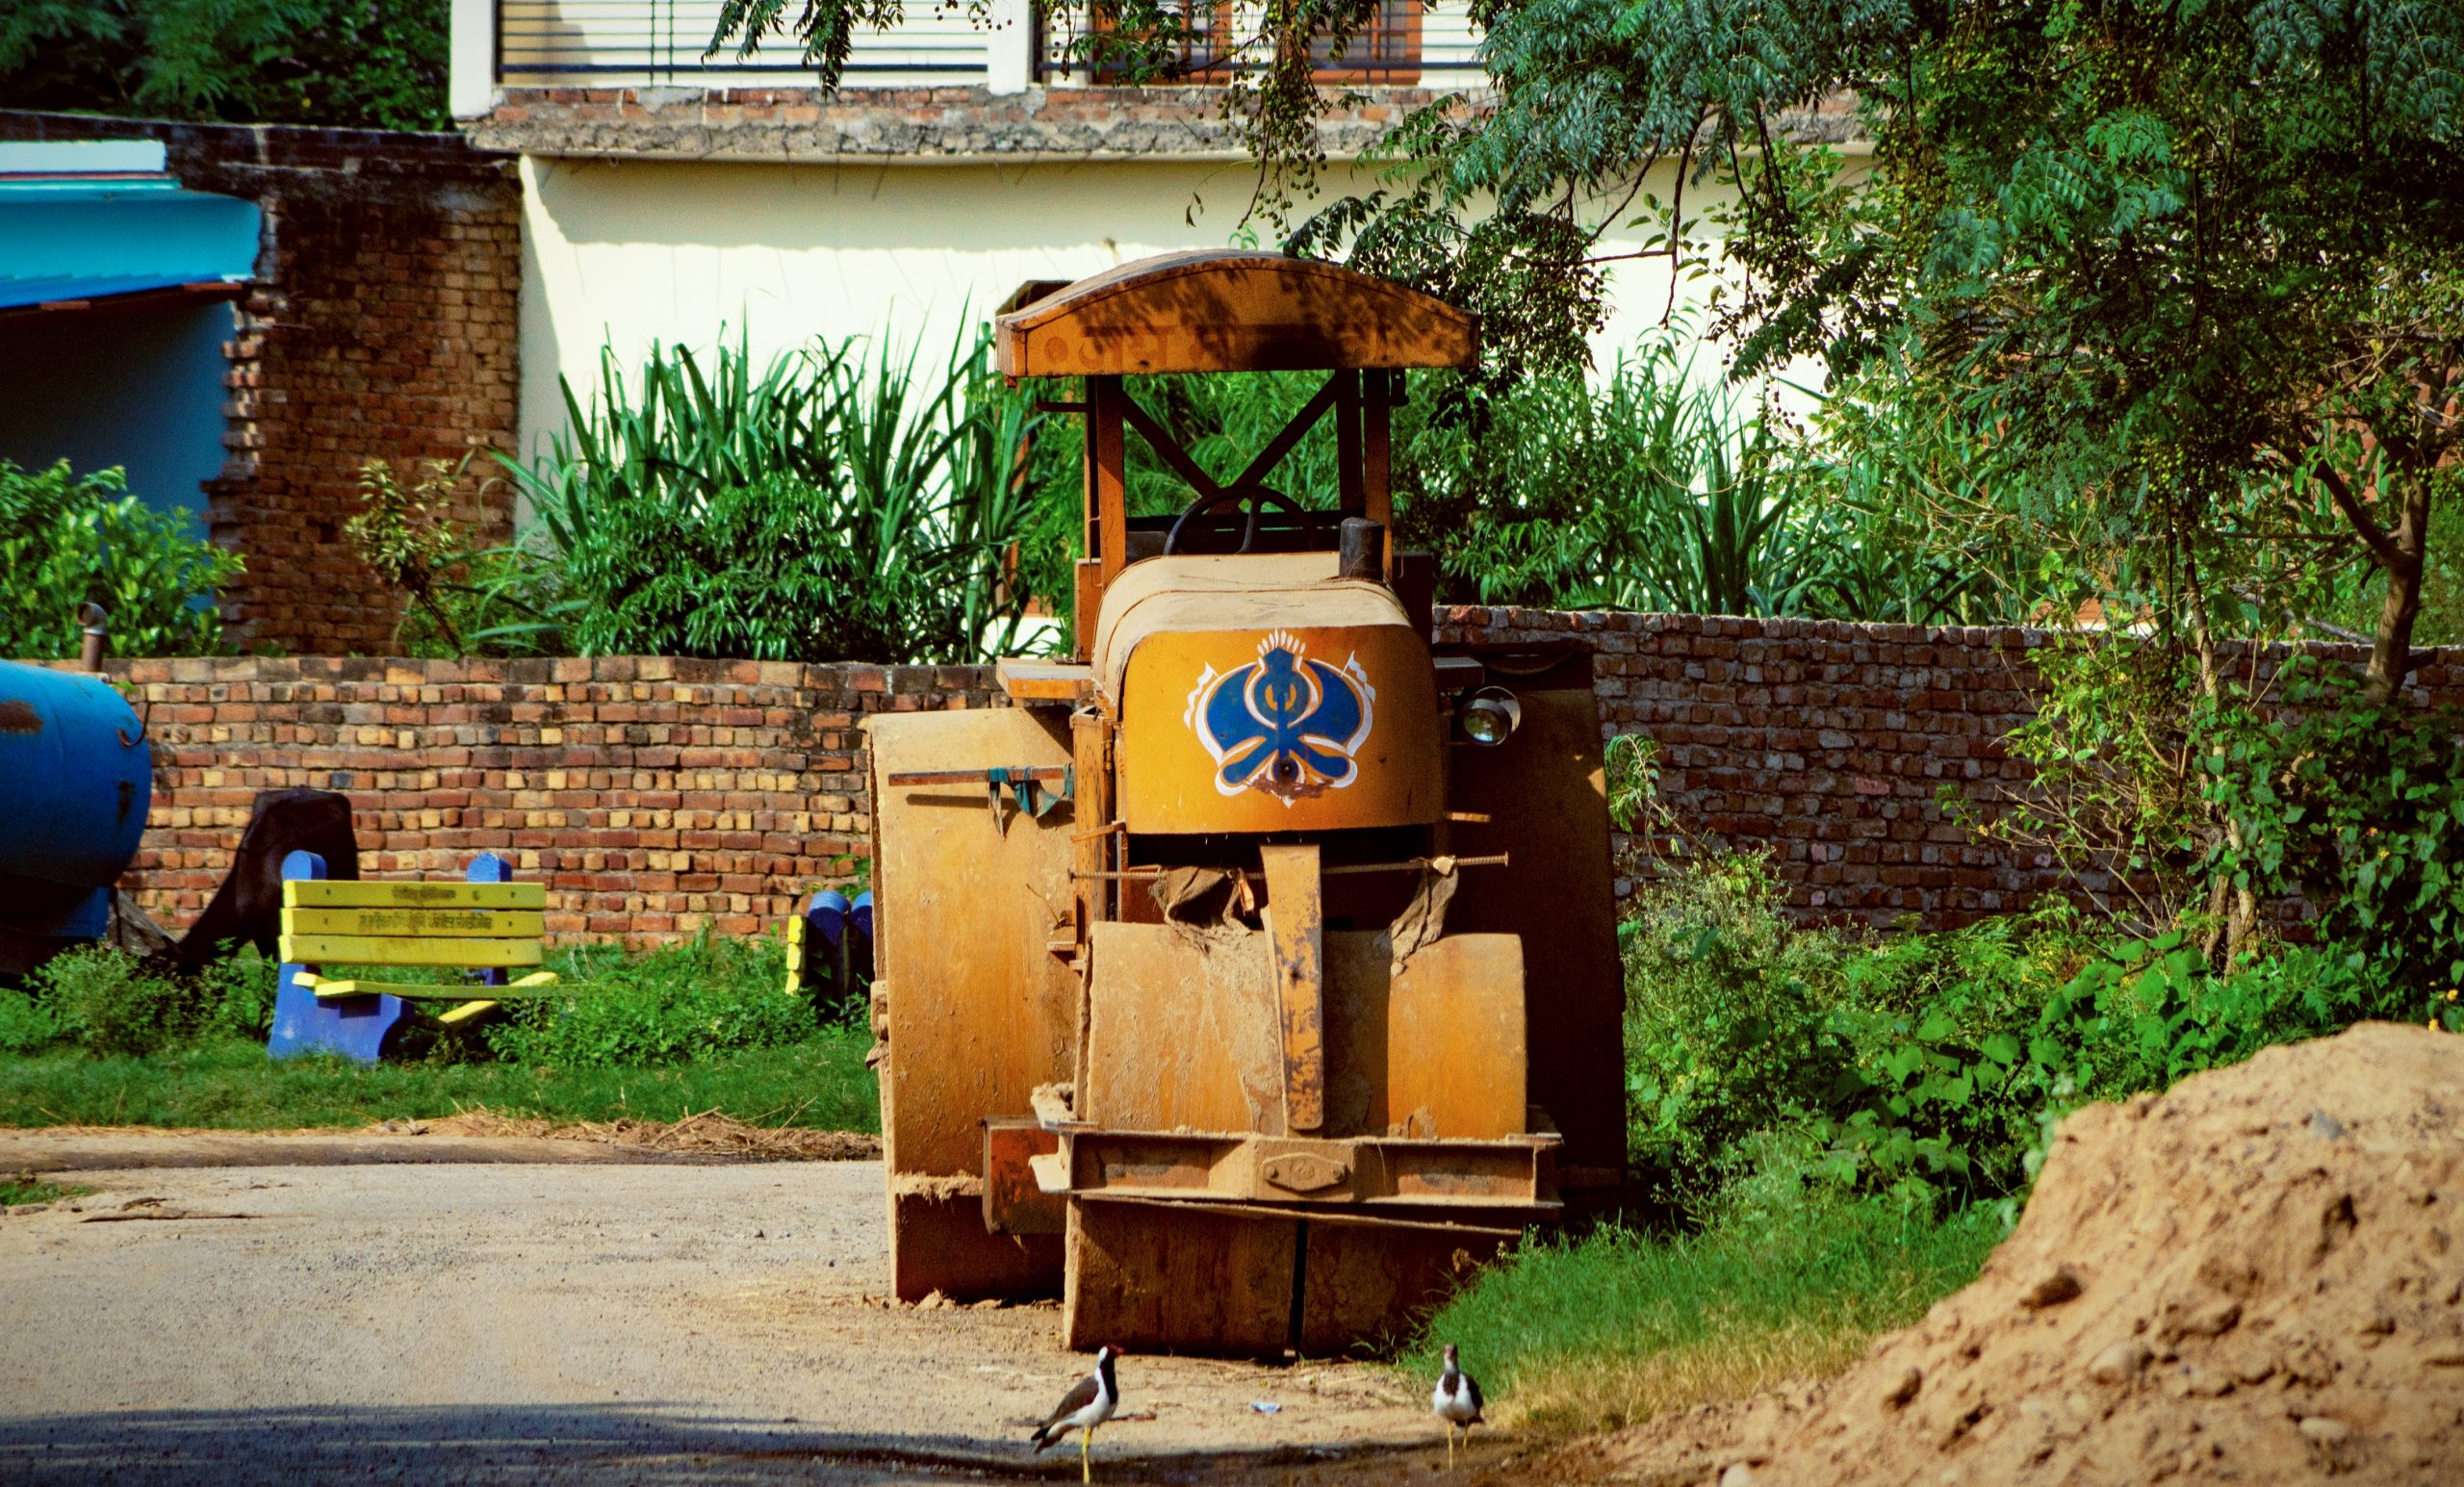 Road roller on the side Road